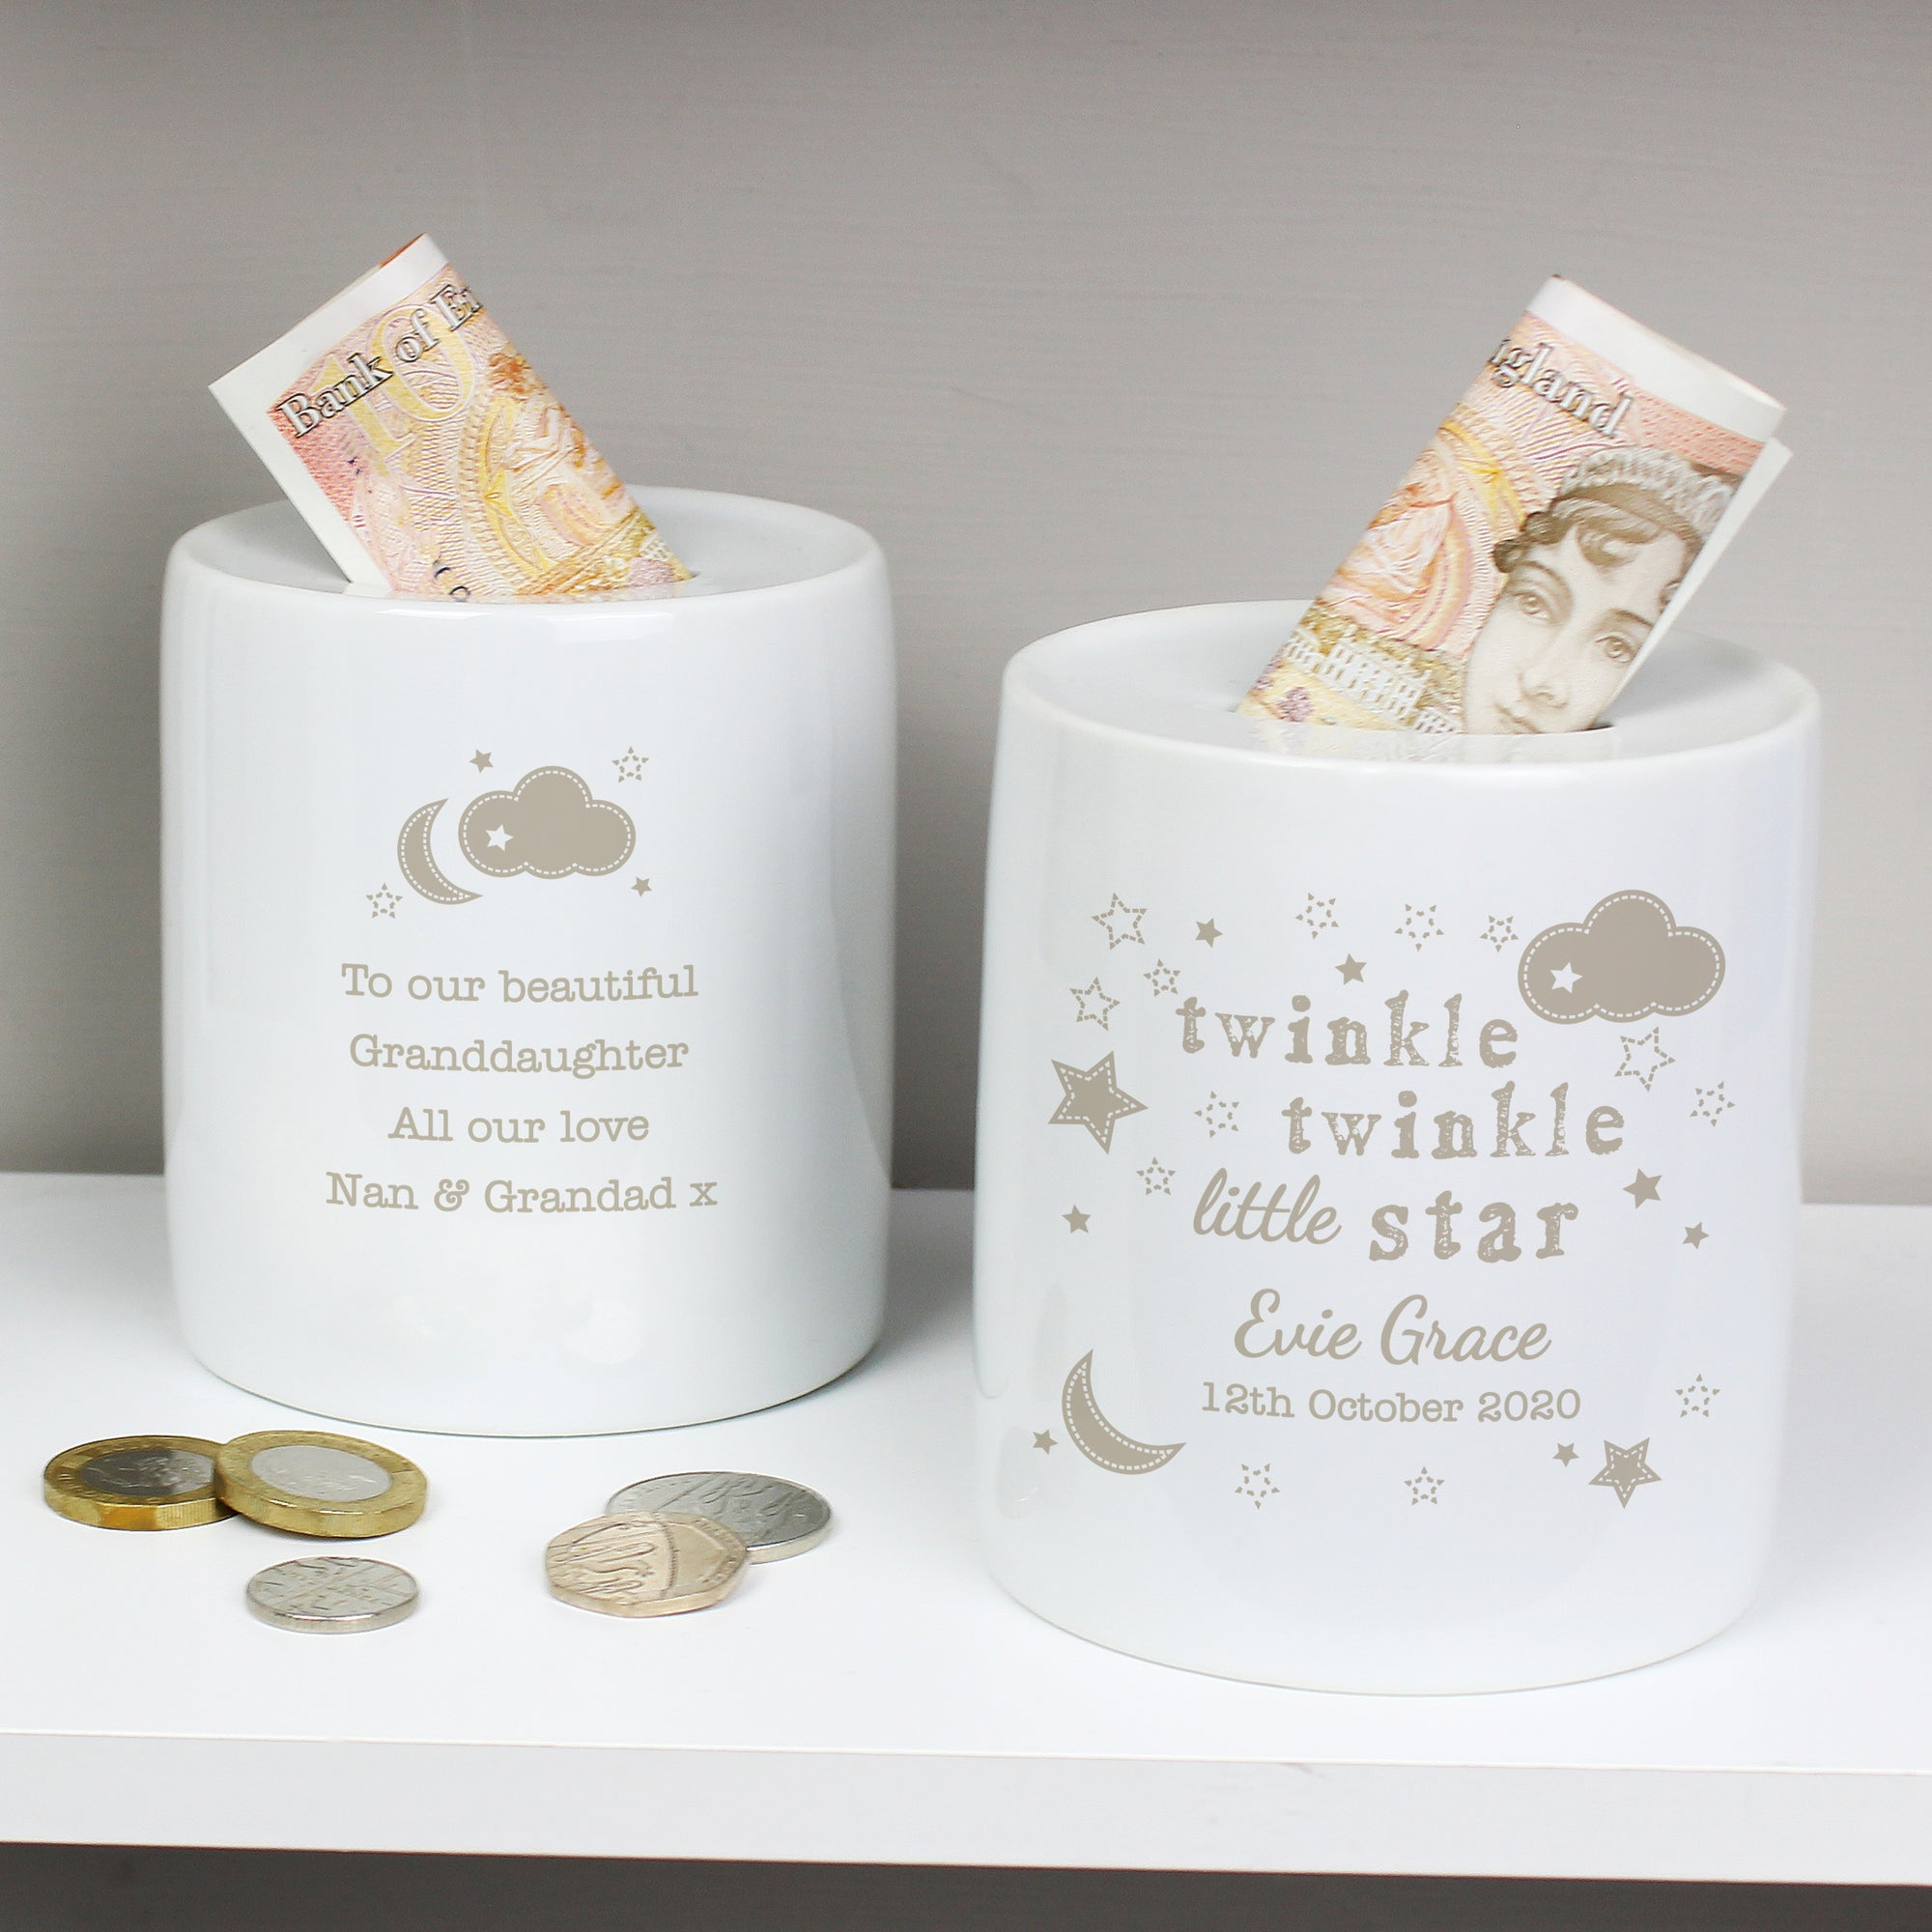 Image of a personalised ceramic money box. The money box is a white cylinder with a money slot on the top. The front of the money box features the text 'twinkle twinkle little star' in a mixture of fonts and below this you can add a name and date of your choice.  The back of the money box features an image of a crescent moon and a cloud and below this you can add your own message over up to 4 lines.  All of the text and images are printed in a dark beige colour.